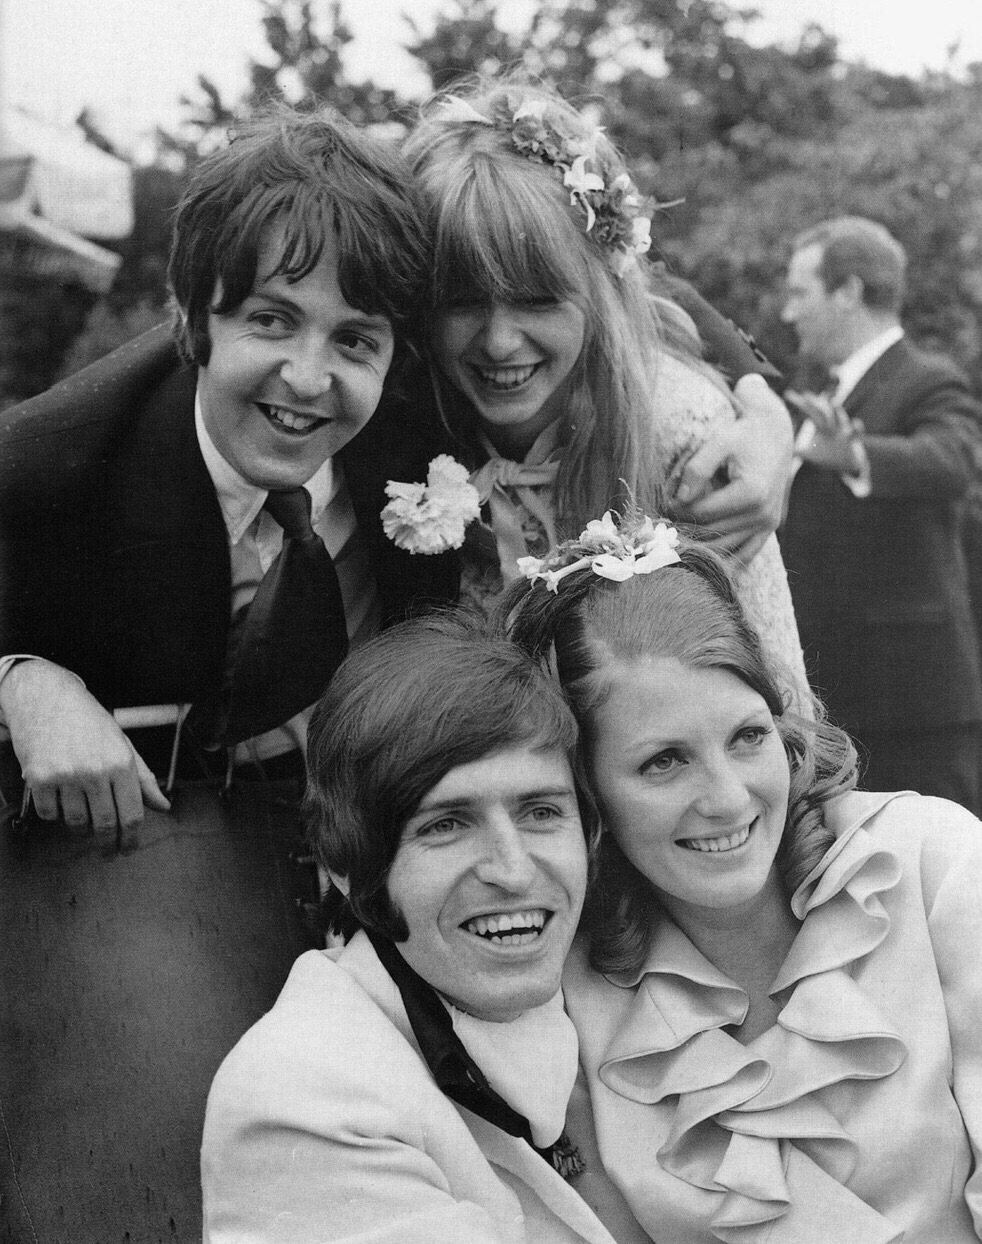 Paul McCartney and Jane Asher at Paul's brother Mike's wedding, 1968.